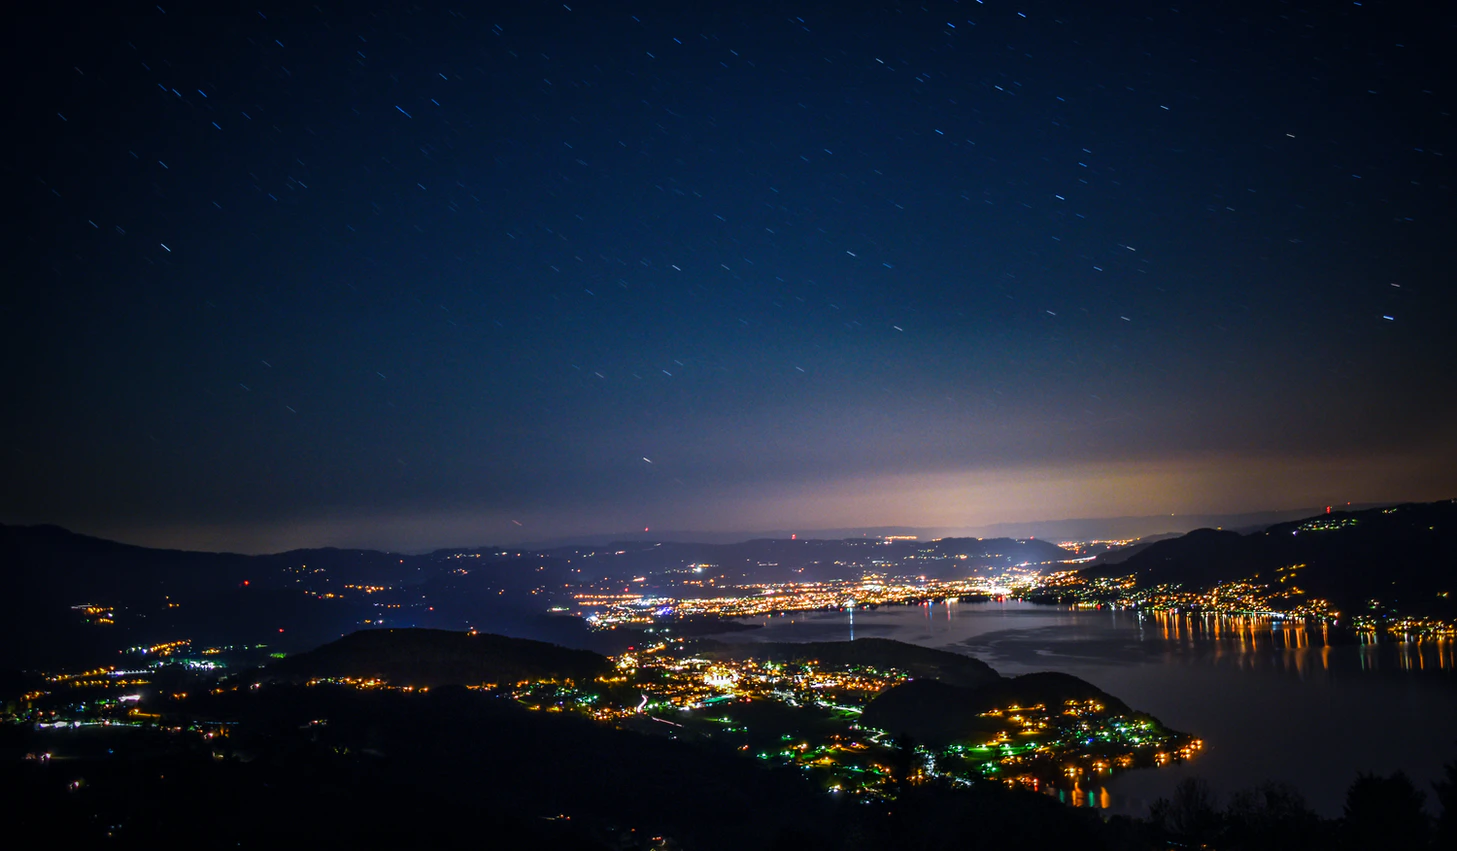 Nightlife in Switzerland: How Can You Spend Your After-Dark Hours?